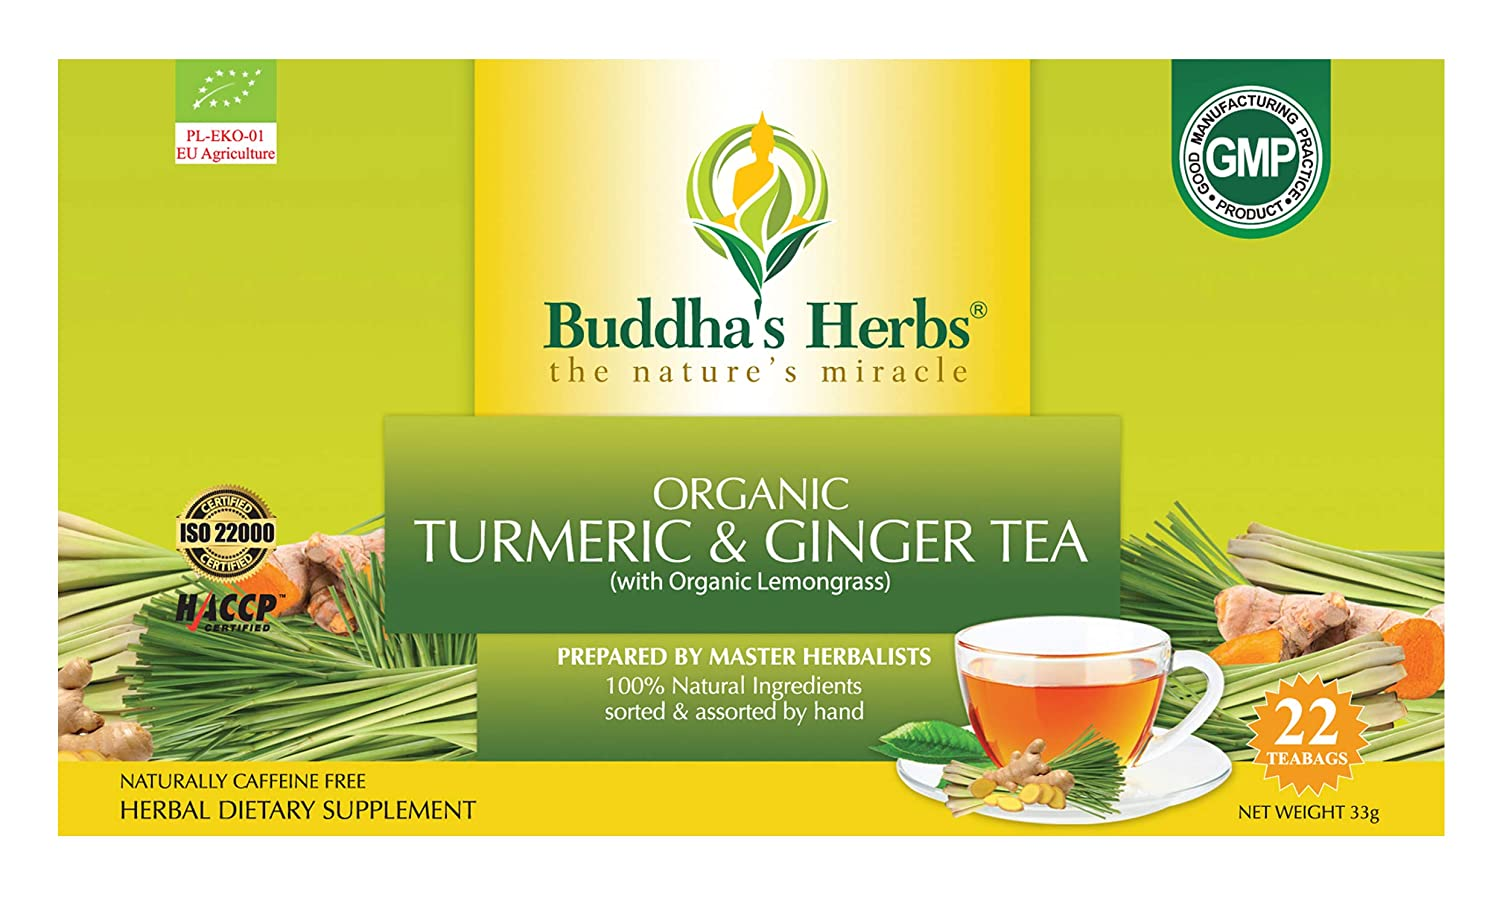 Buddha's Herbs Organic Turmeric, Ginger and Lemongrass Tea - Natural Immunity and Inflammation Support -22 Tea Bags